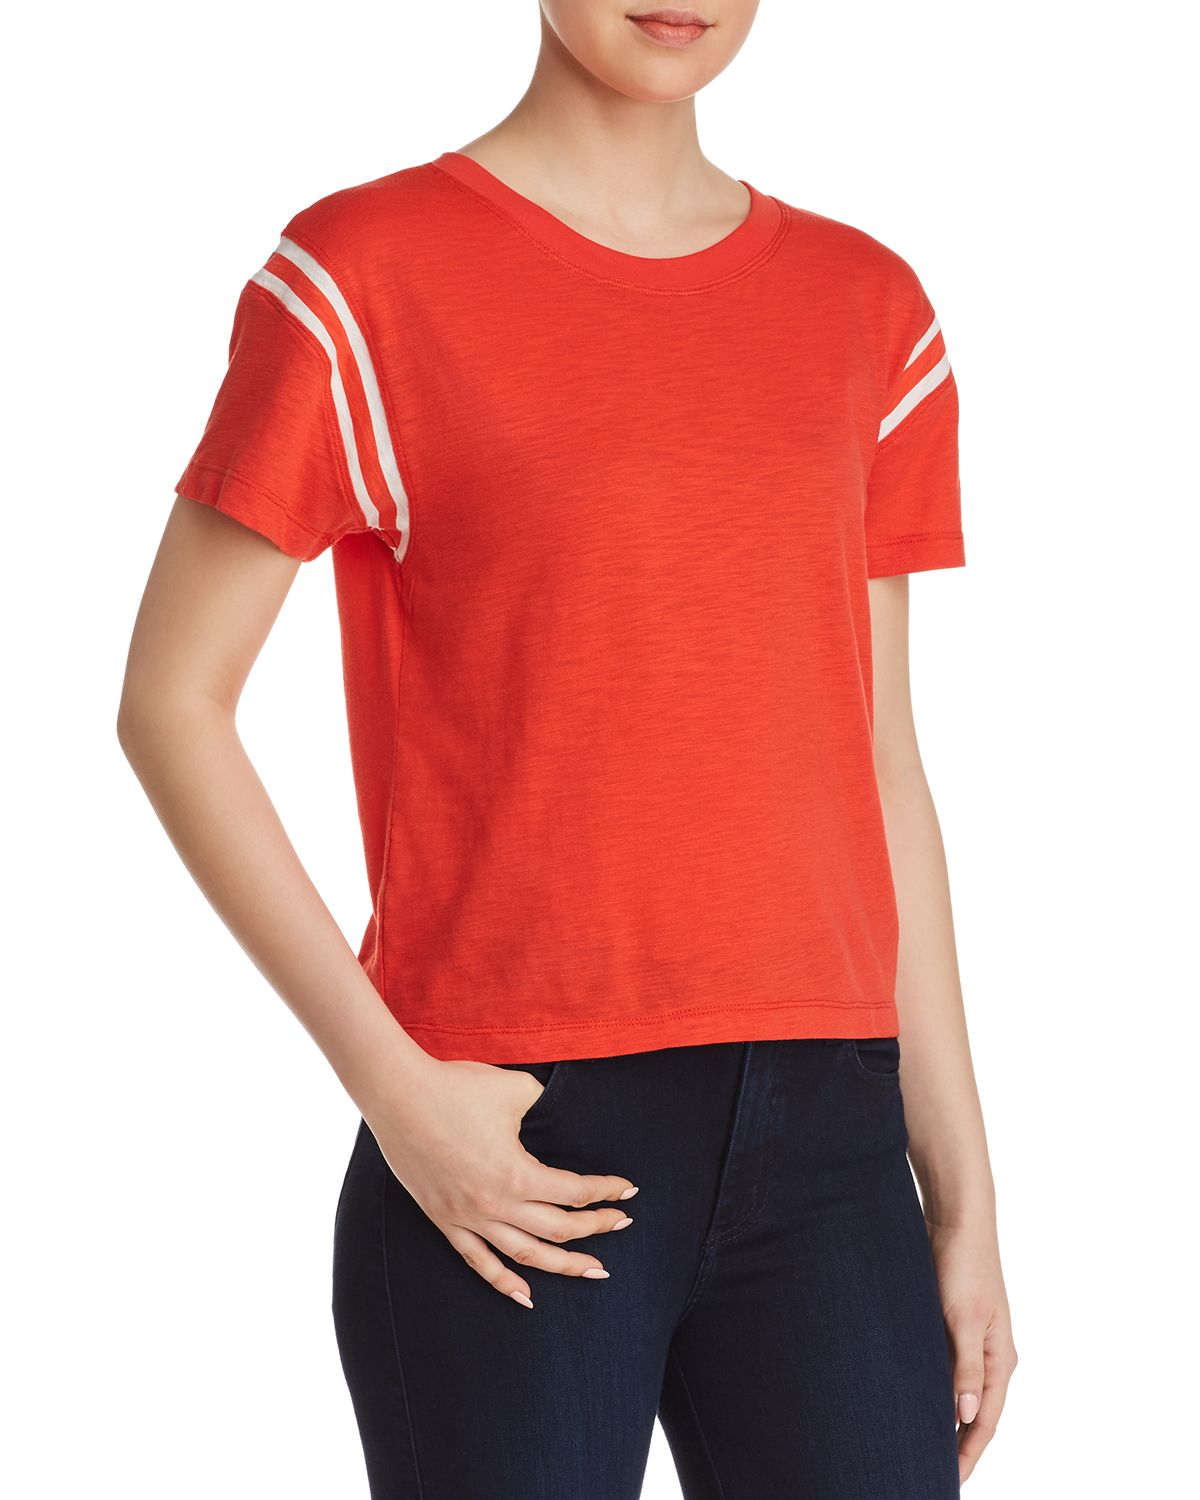 Football Striped Inset Tee by Pam & Gela